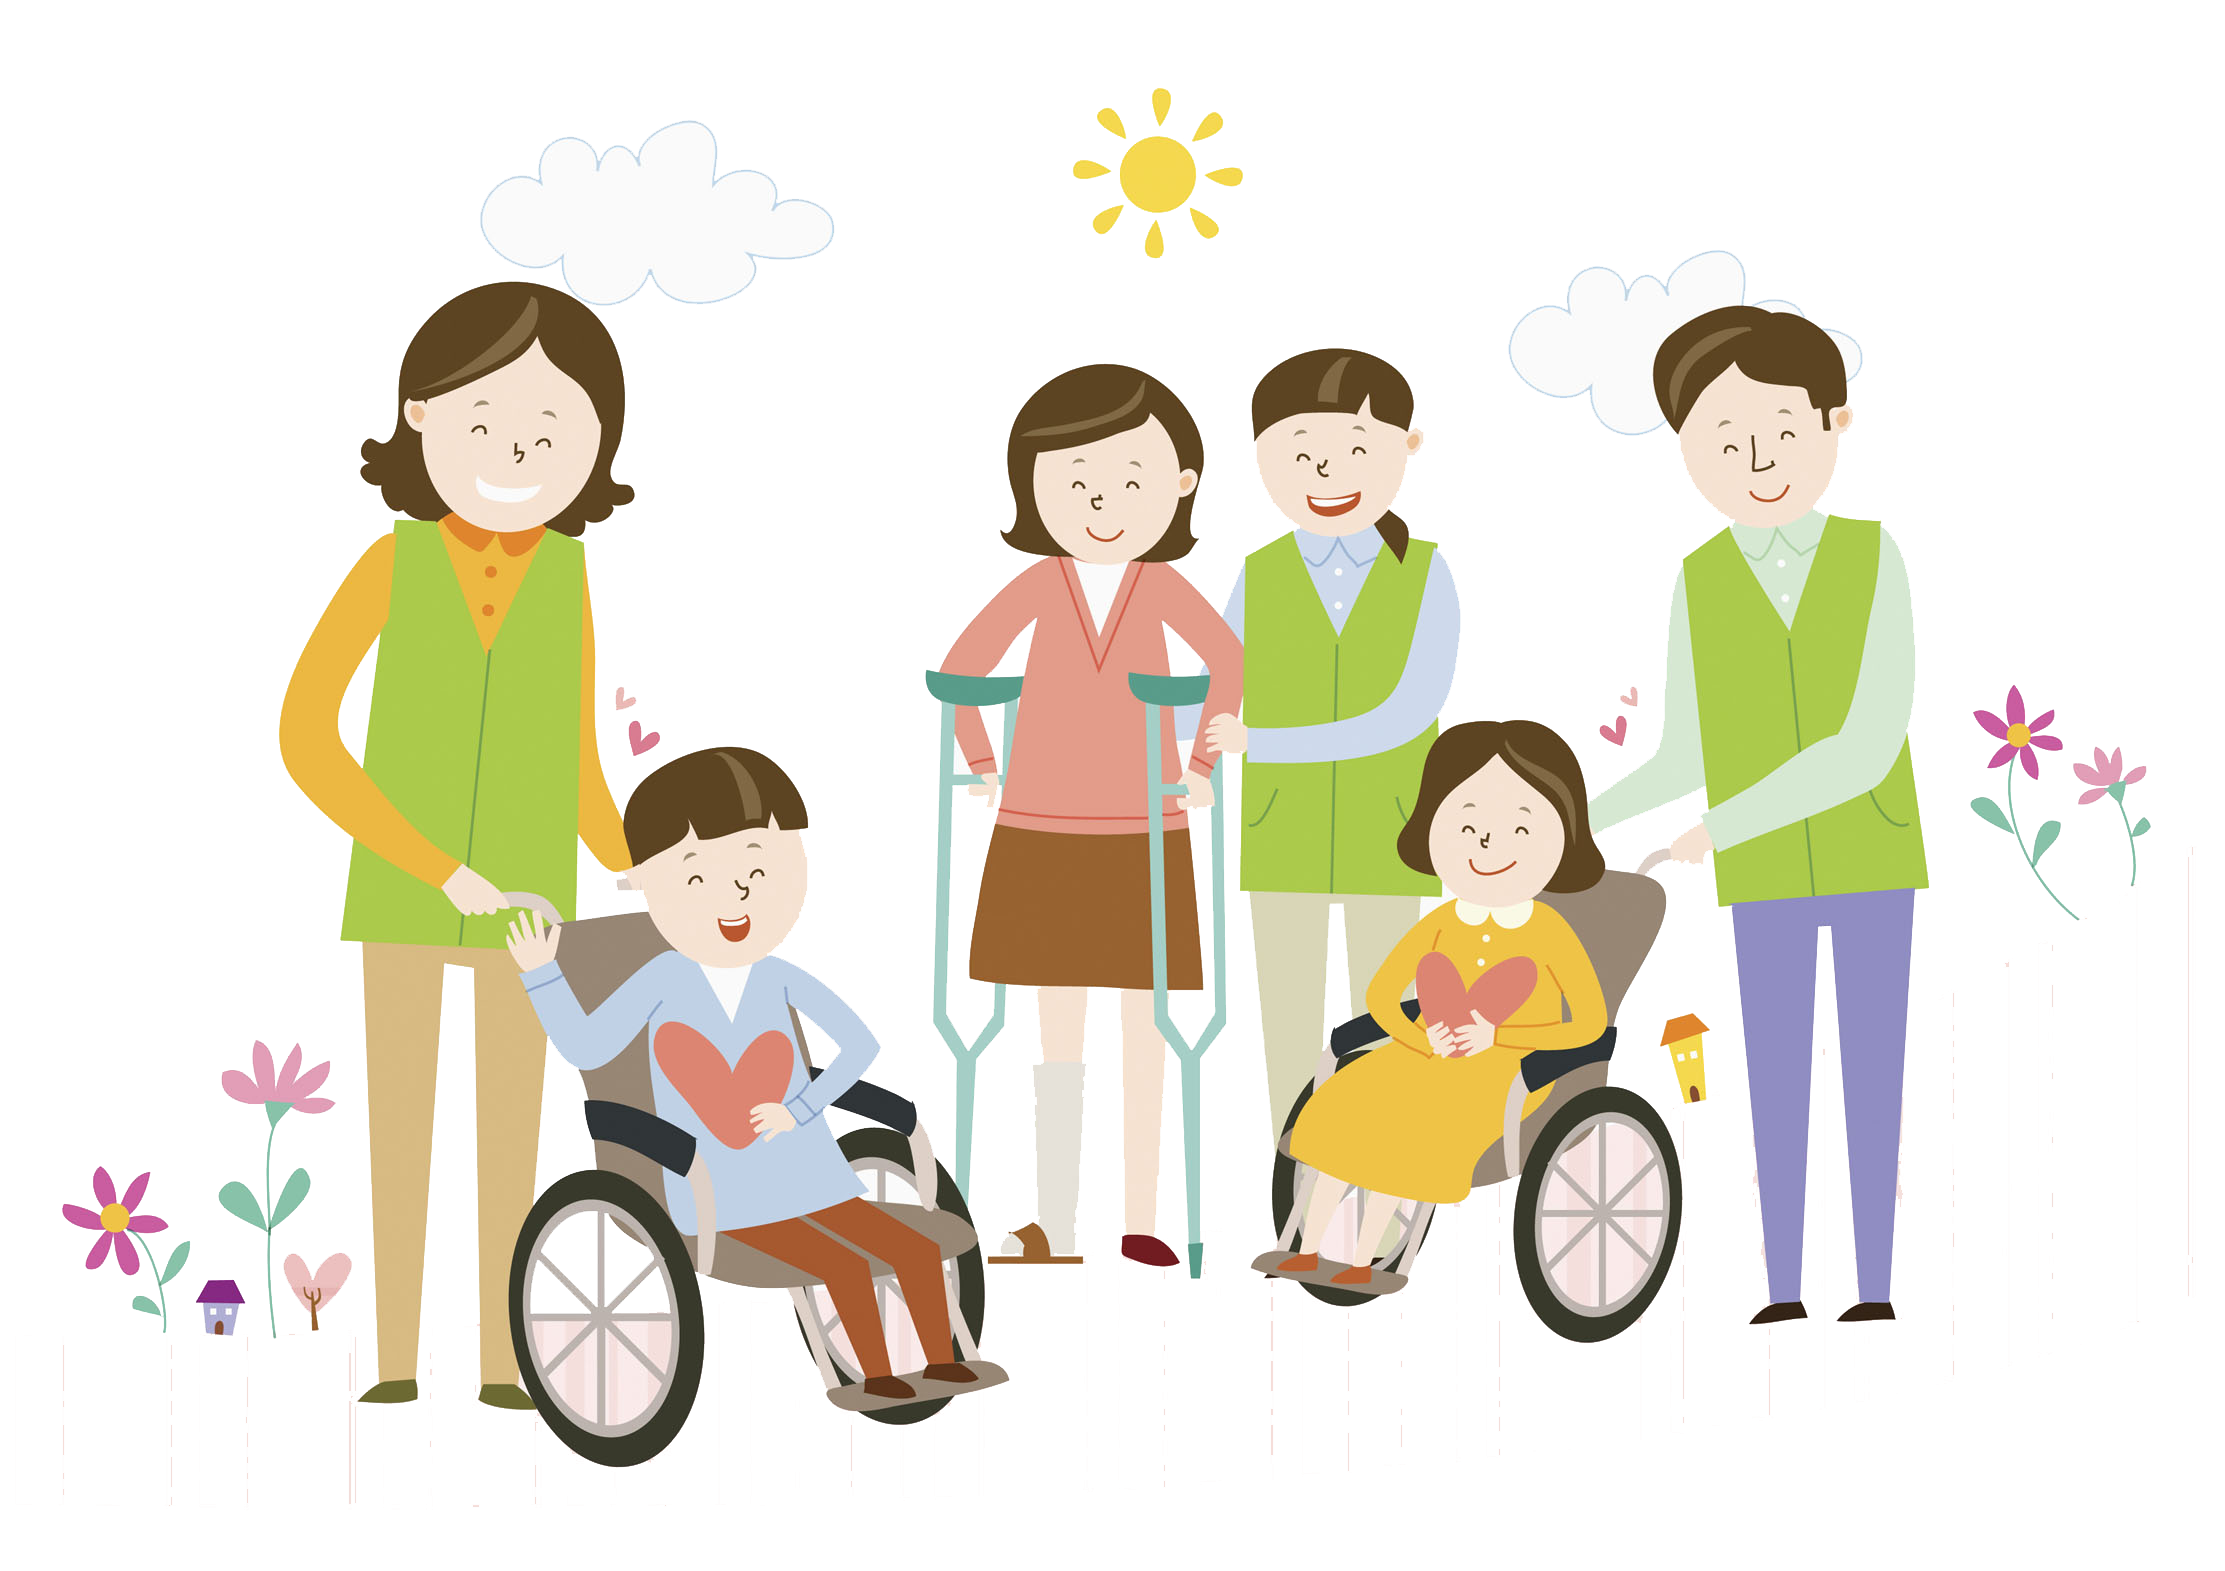 Wheelchair disability independent living. Volunteering clipart children's